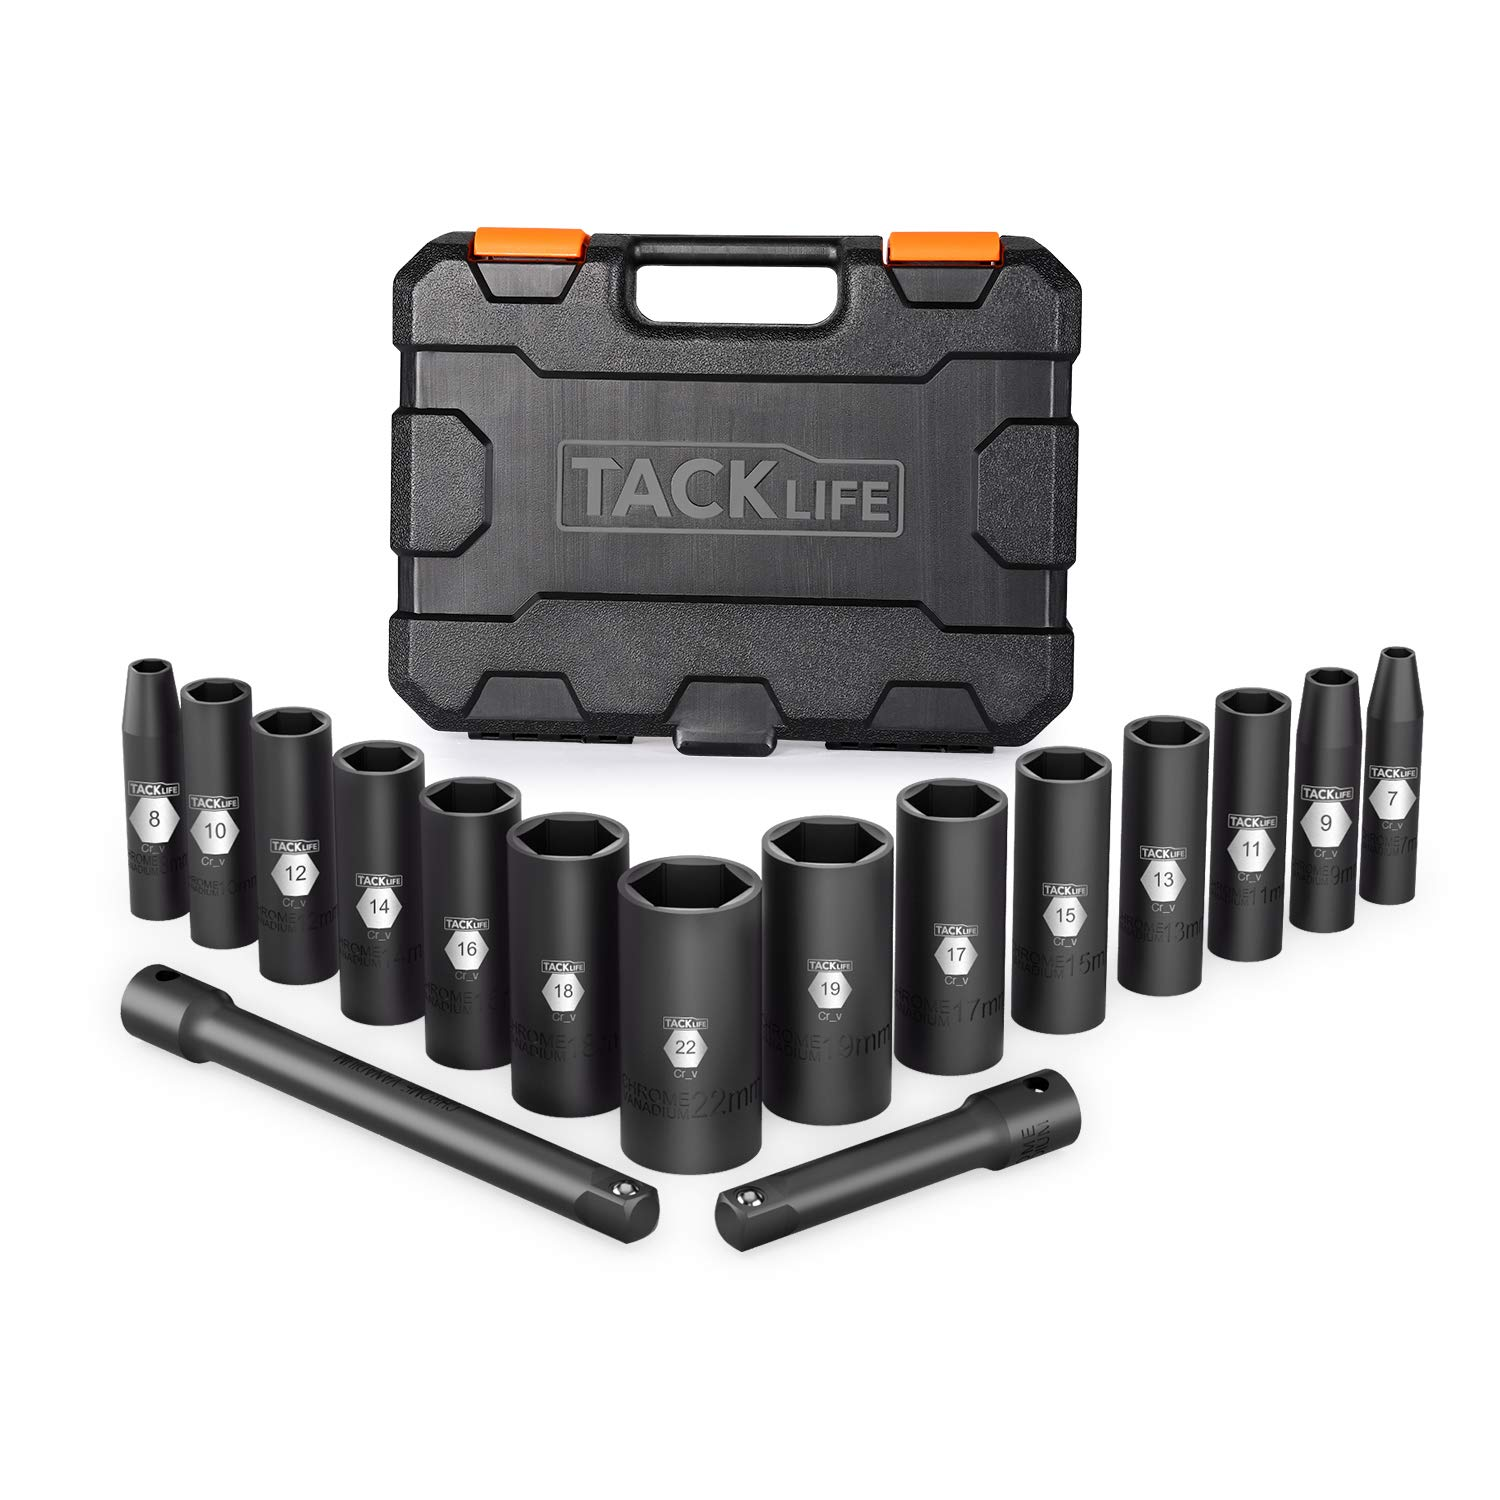 Tacklife 3/8-Inch 16pcs Drive Deep Impact Socket Set,Metric,CR-V Steel,6-point,3'' and 6'' extensions -HIS4A by TACKLIFE